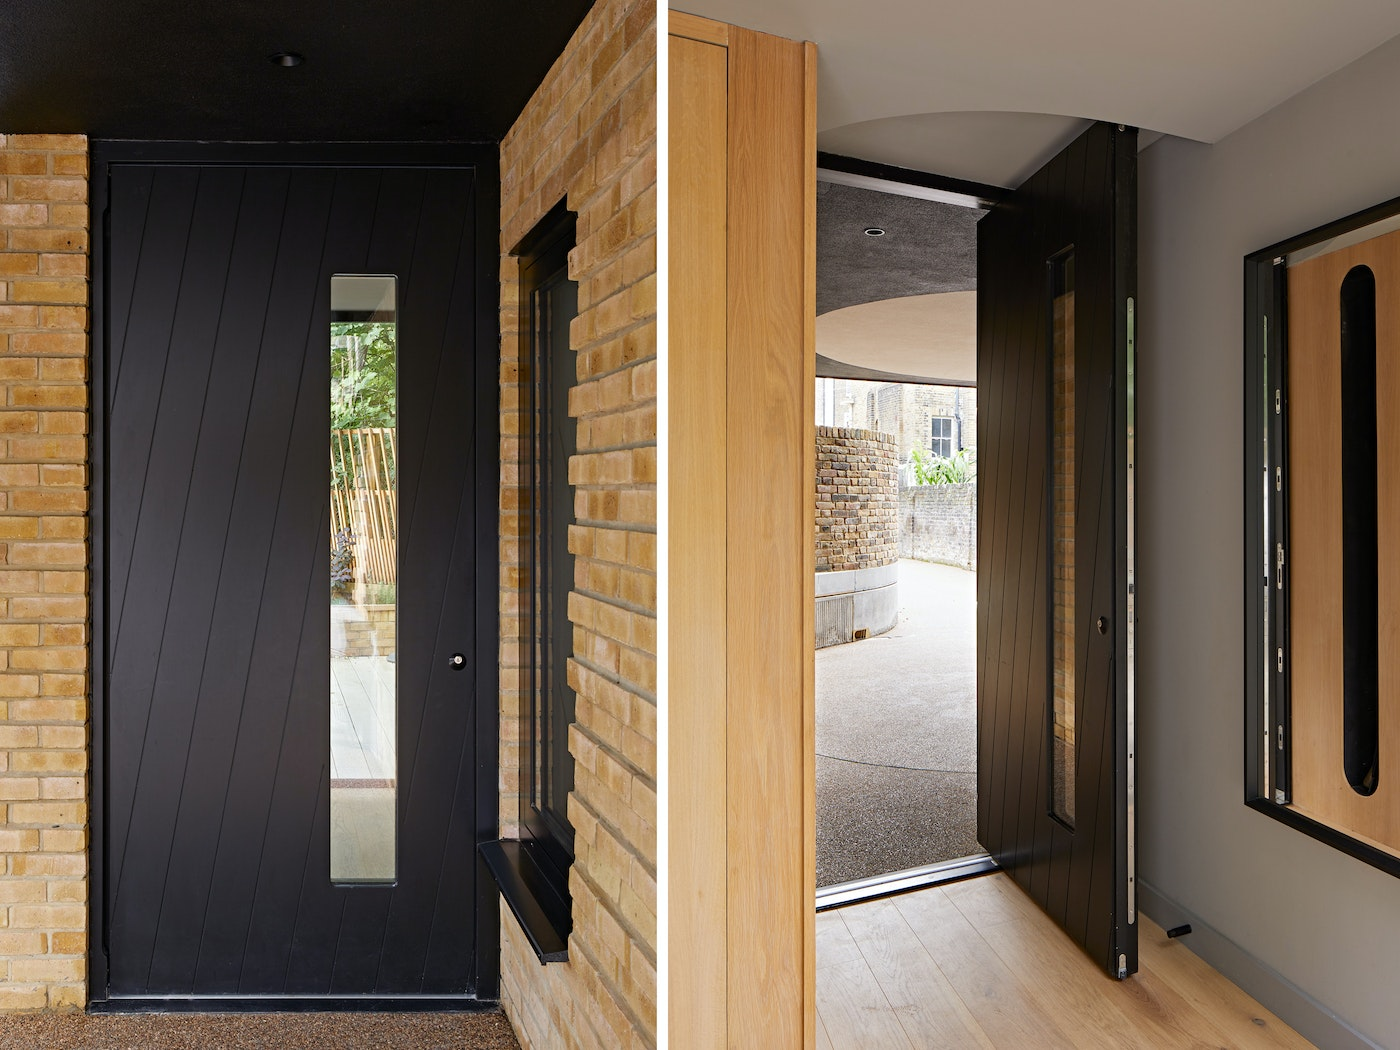 Interesting diagonal grooves offer a twist of design style on this modern black front door